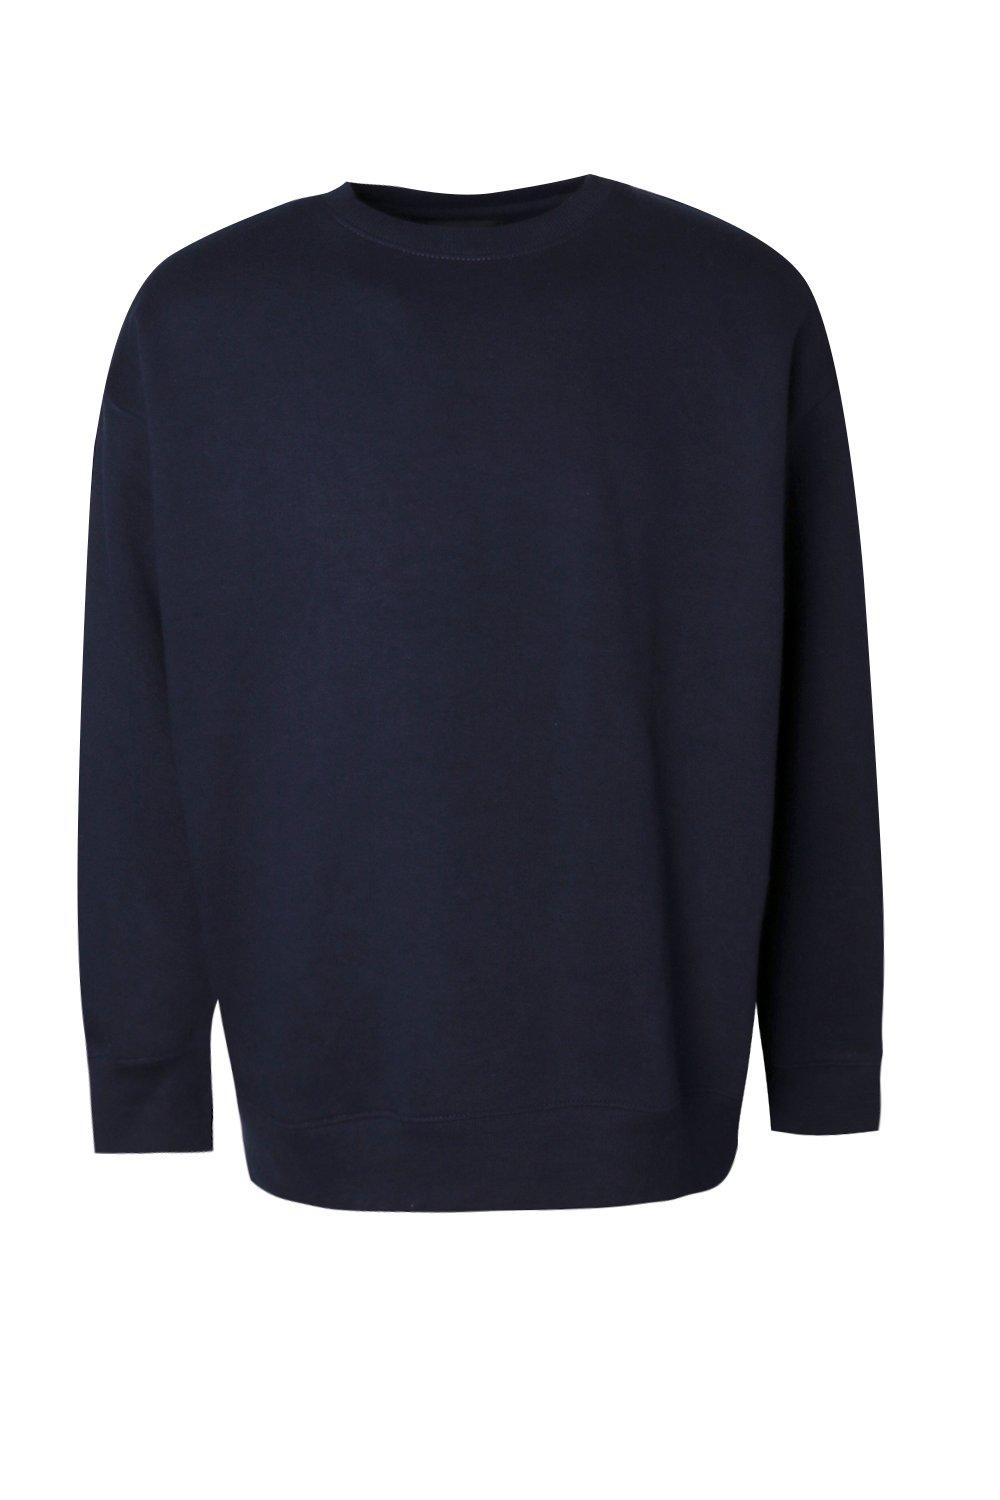 boohooMAN navy Fleece Oversized Sweatshirt